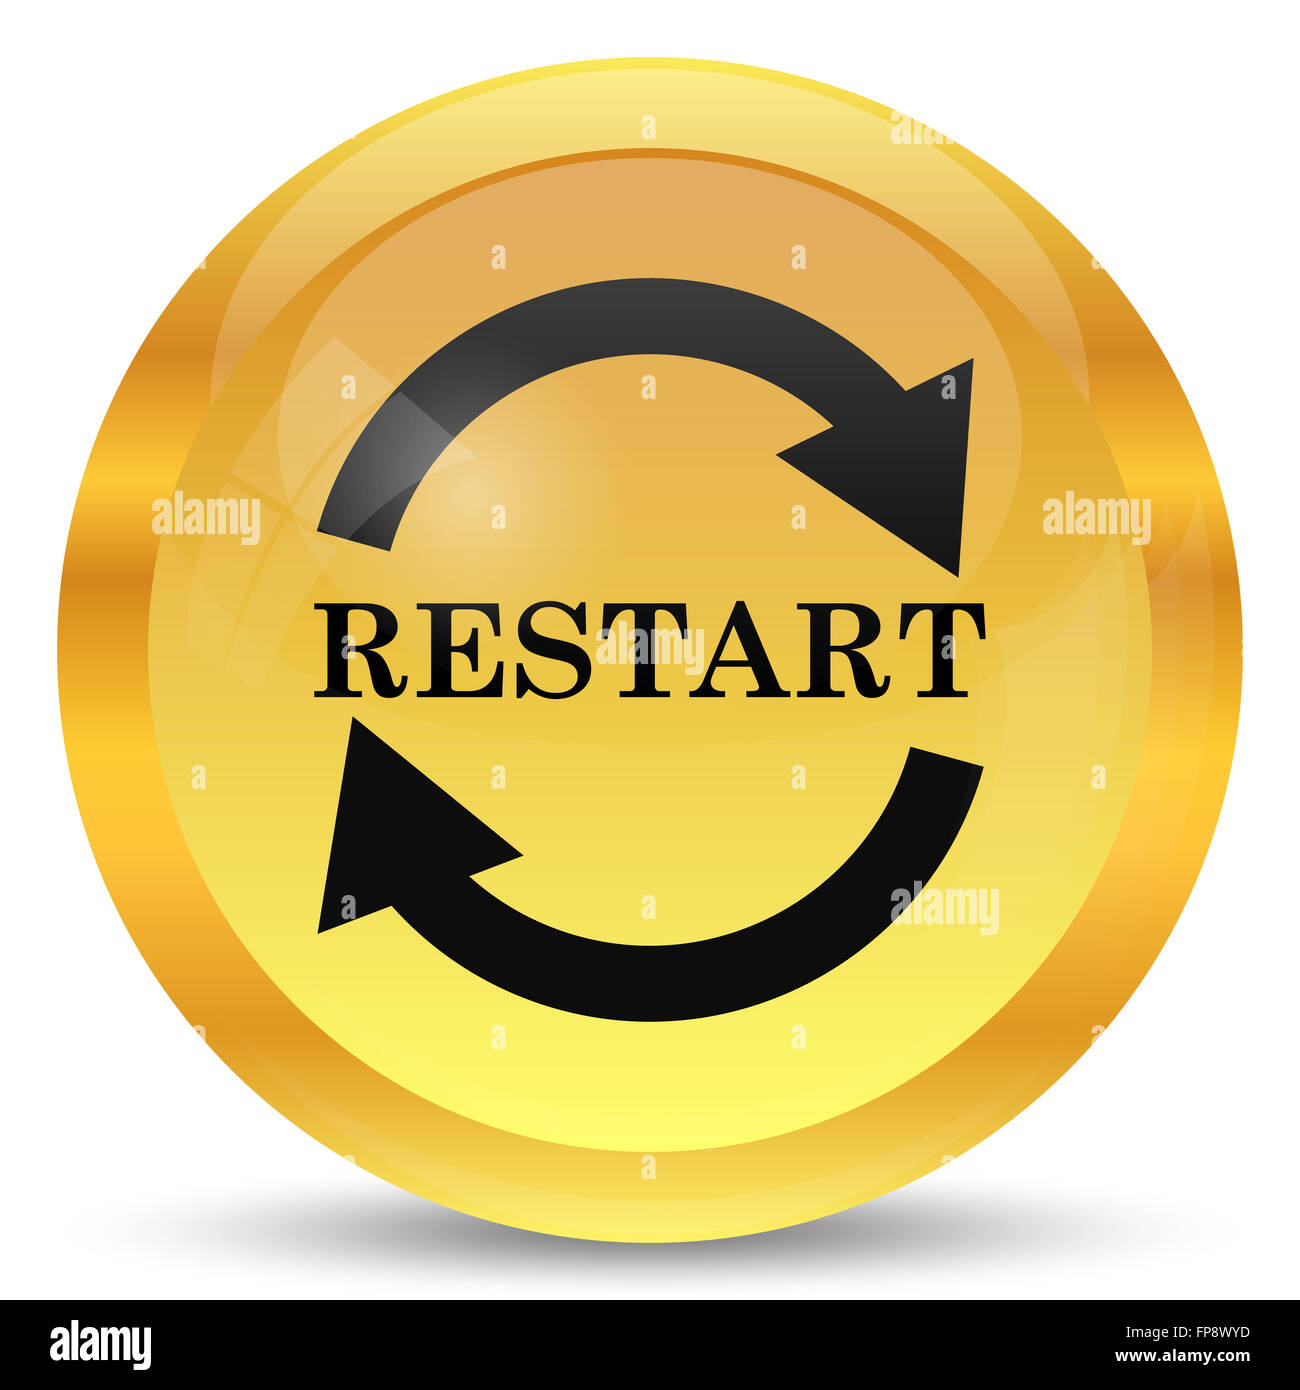 restart icon internet button on white background stock photo alamy https www alamy com stock photo restart icon internet button on white background 99770257 html